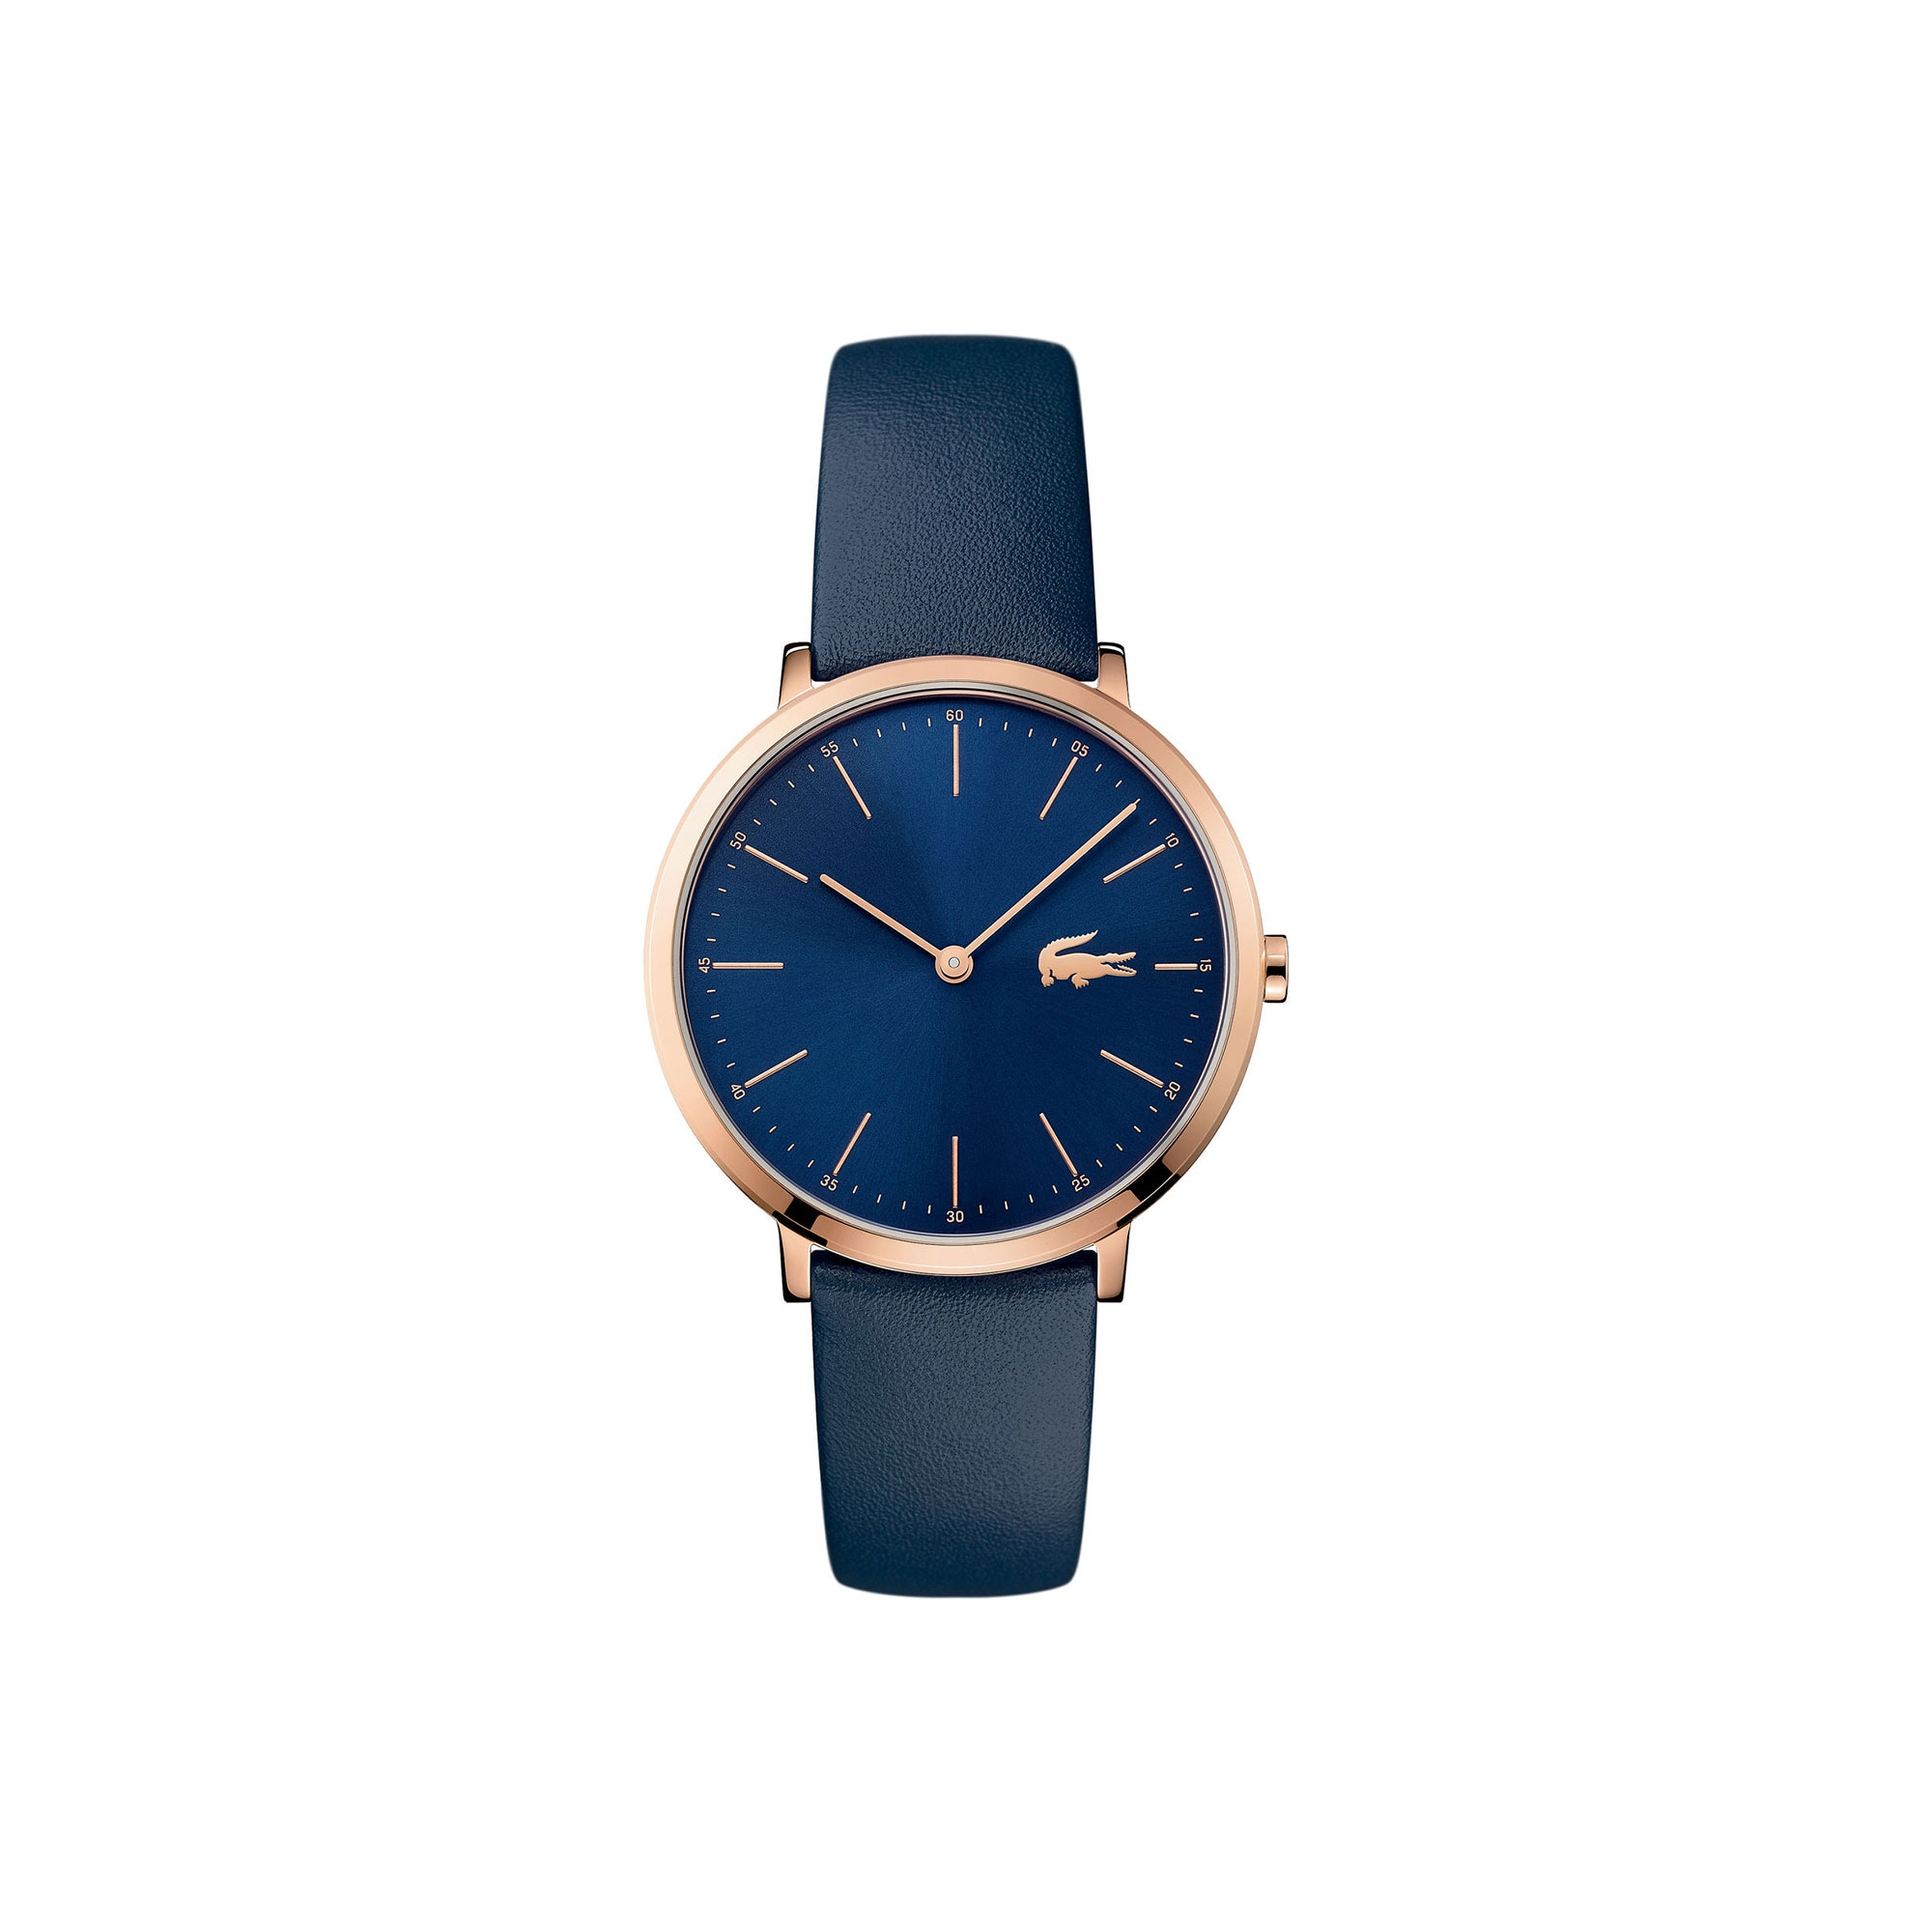 61f595578 Women's Moon Ultra Slim Watch with Blue Leather Strap